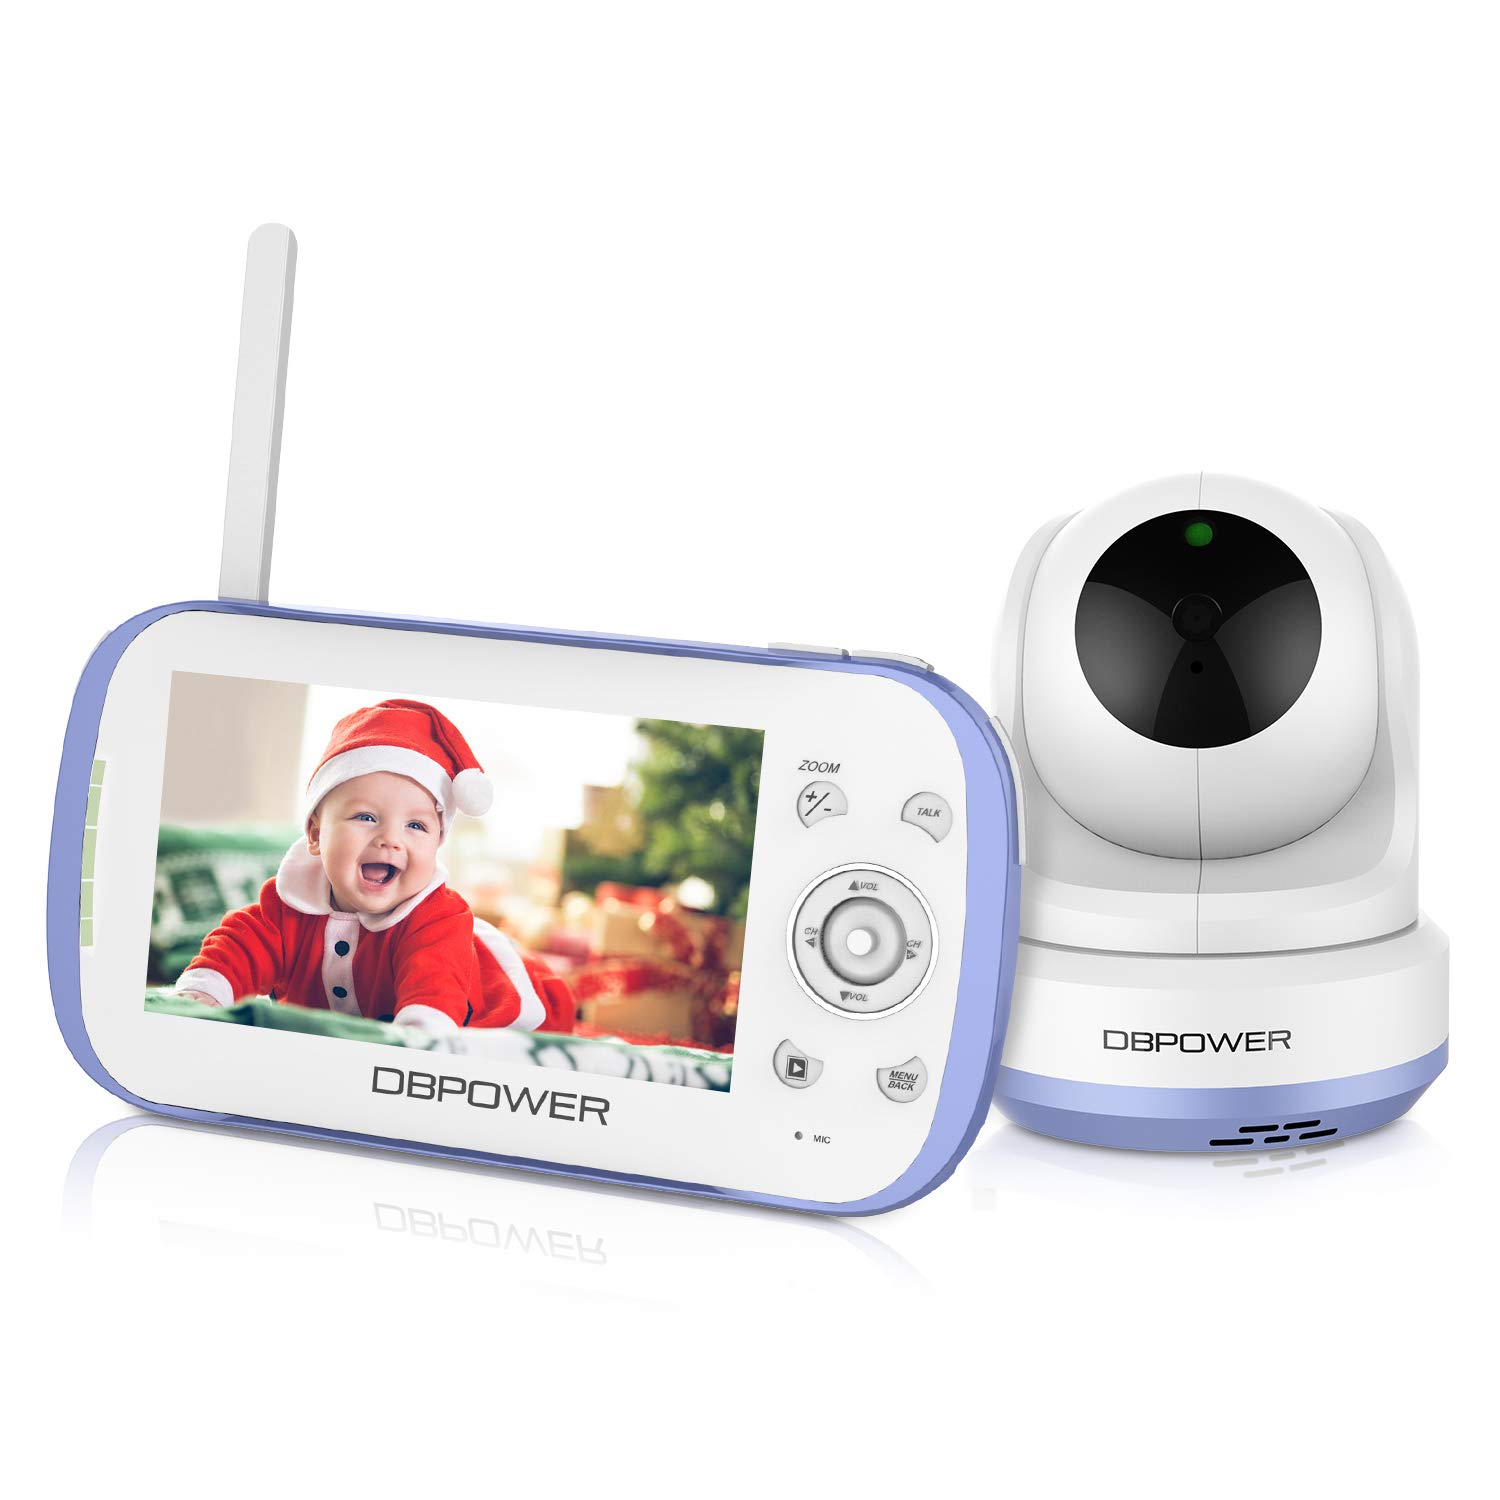 "DBPower digital baby monitor with 4.5"" display unit"